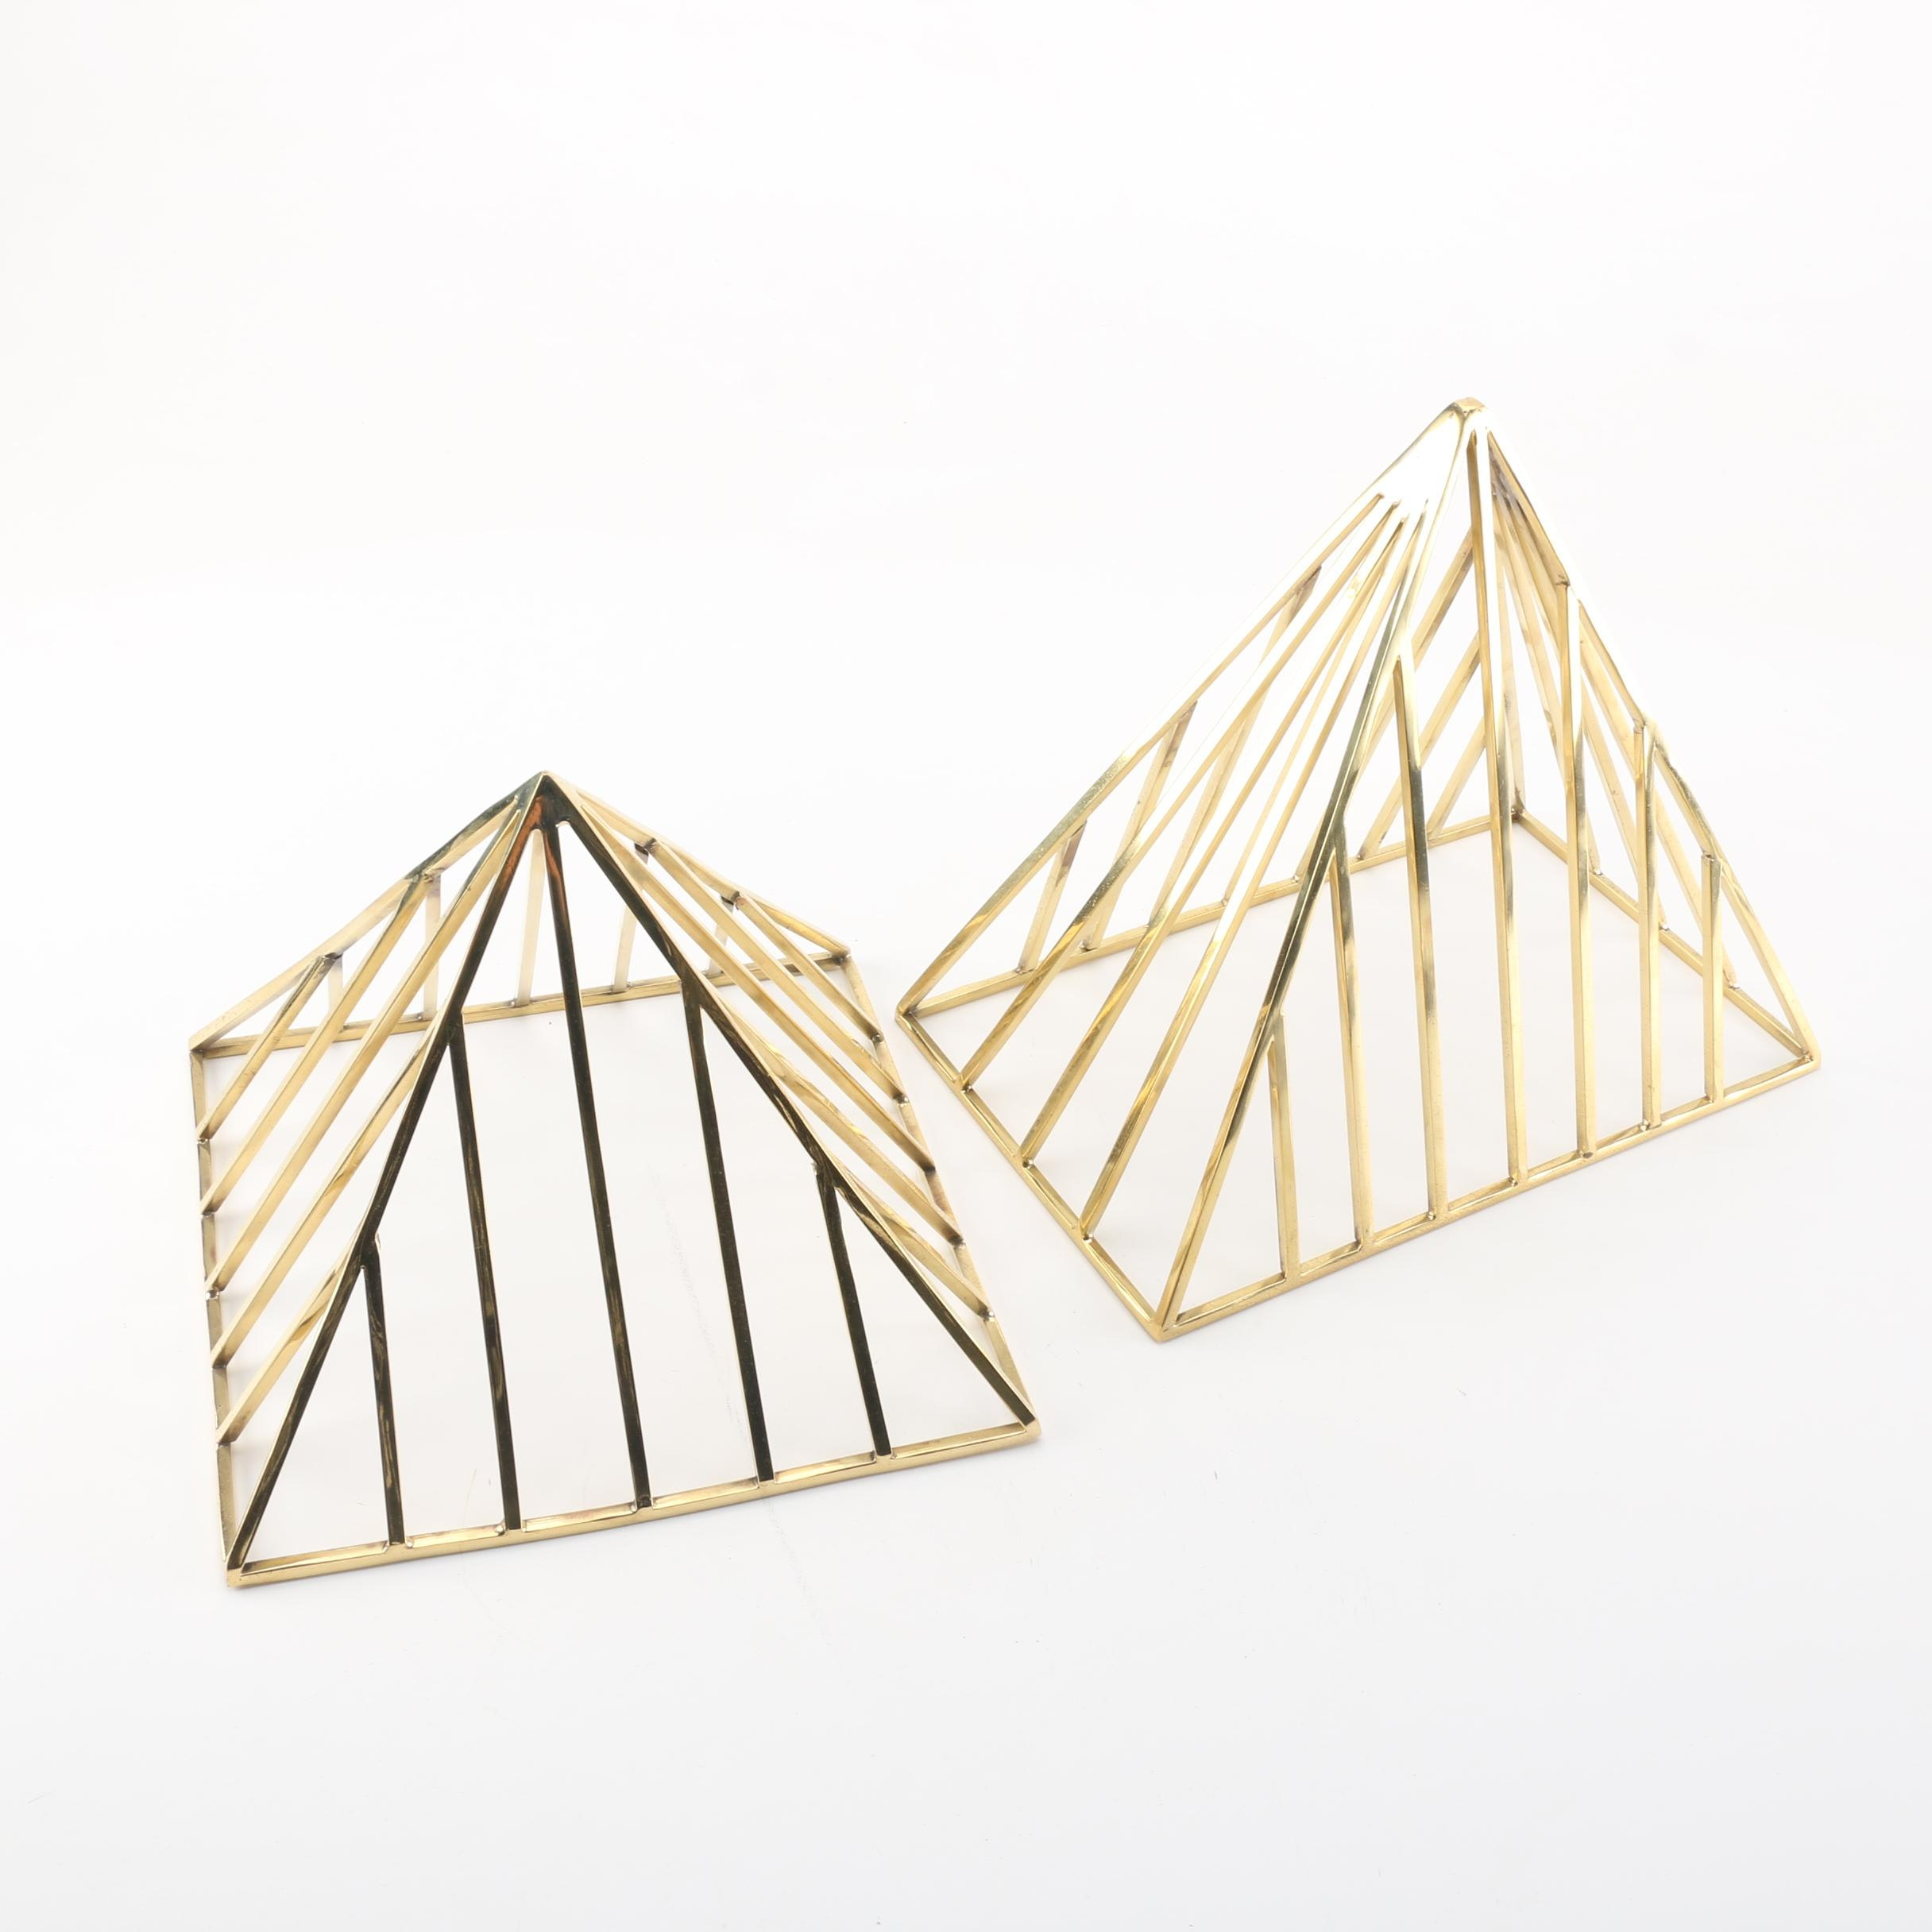 Brass Tone Pyramid Decor